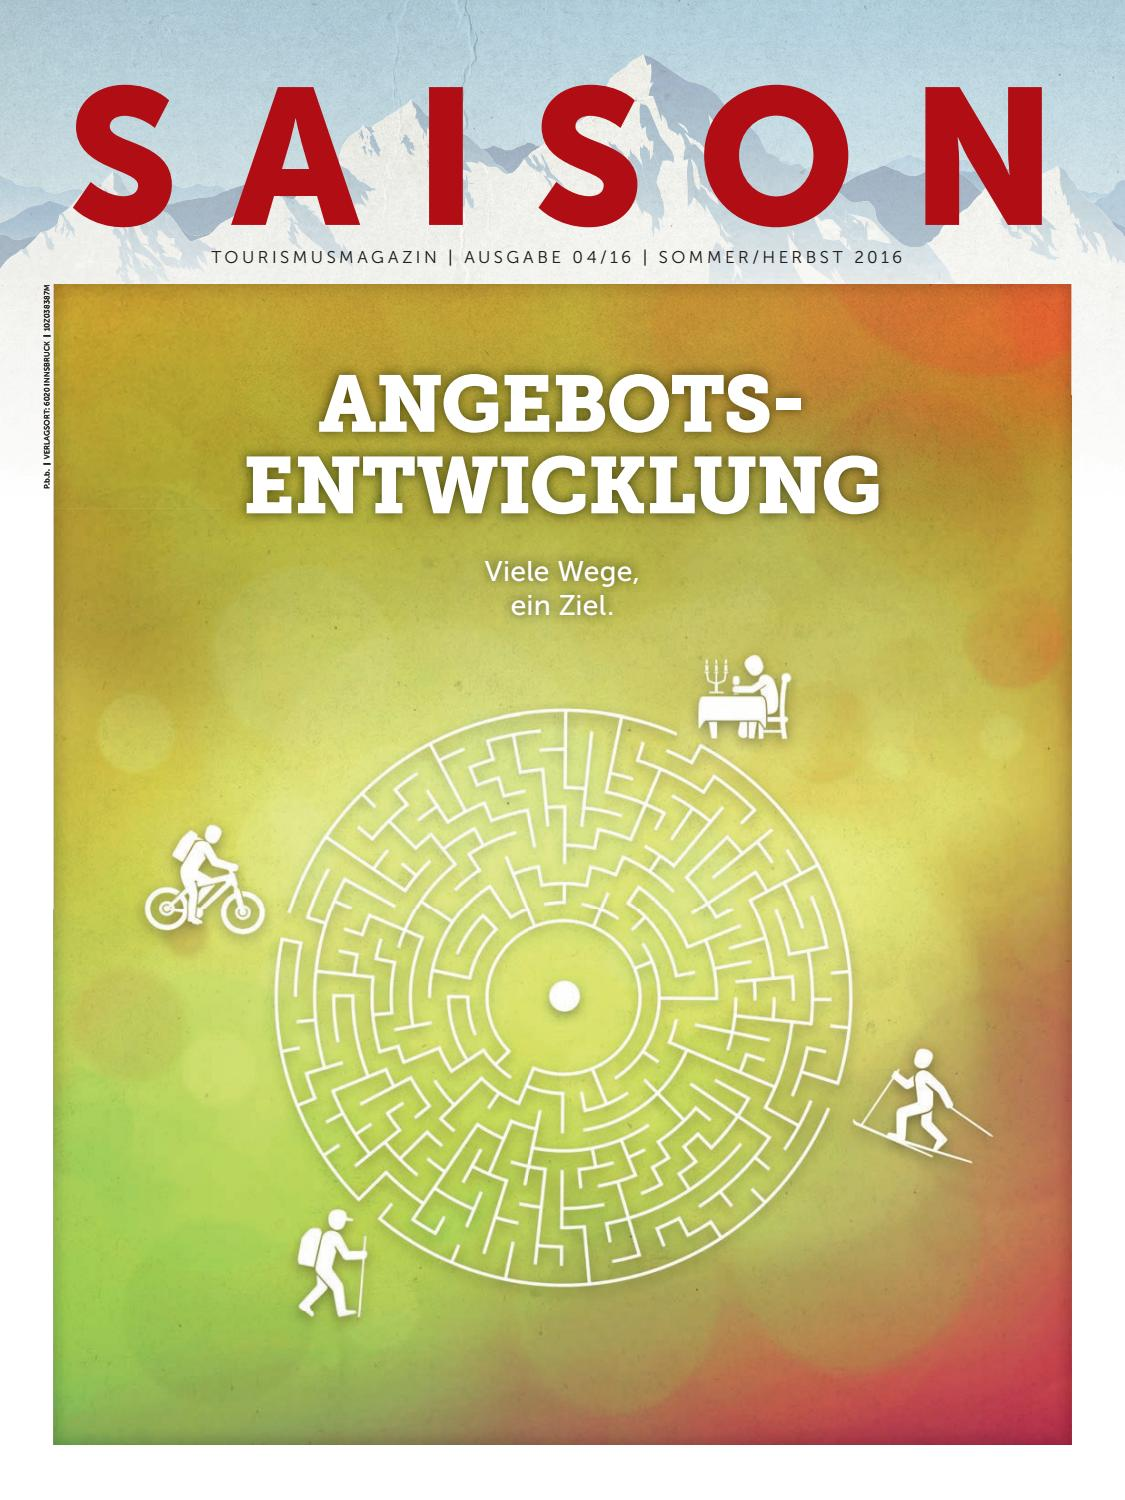 ace53f0a29 SAISON (September 2016) by TARGET GROUP Publishing GmbH - issuu